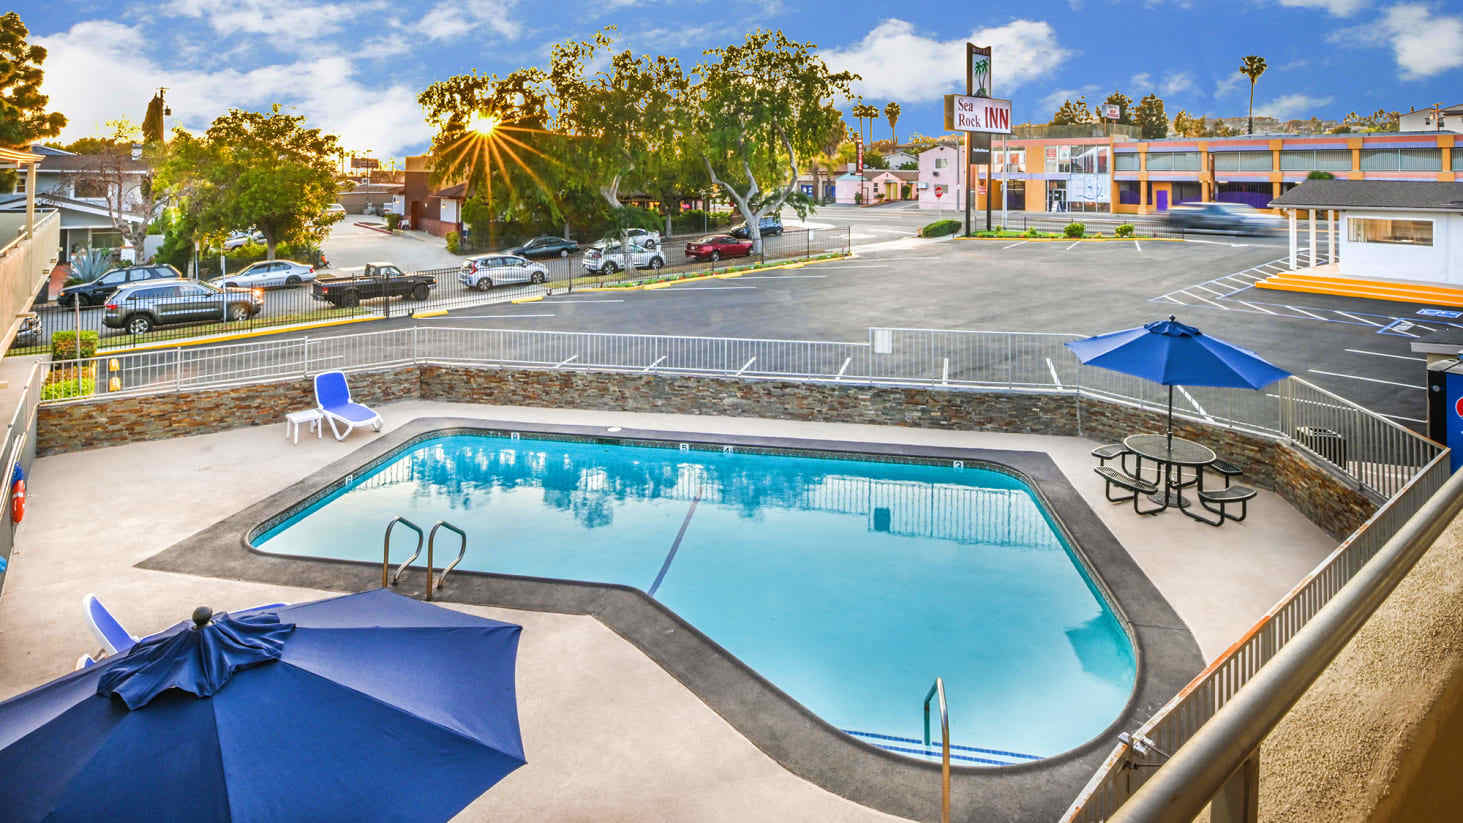 Sea Rock Inn – Long Beach, California